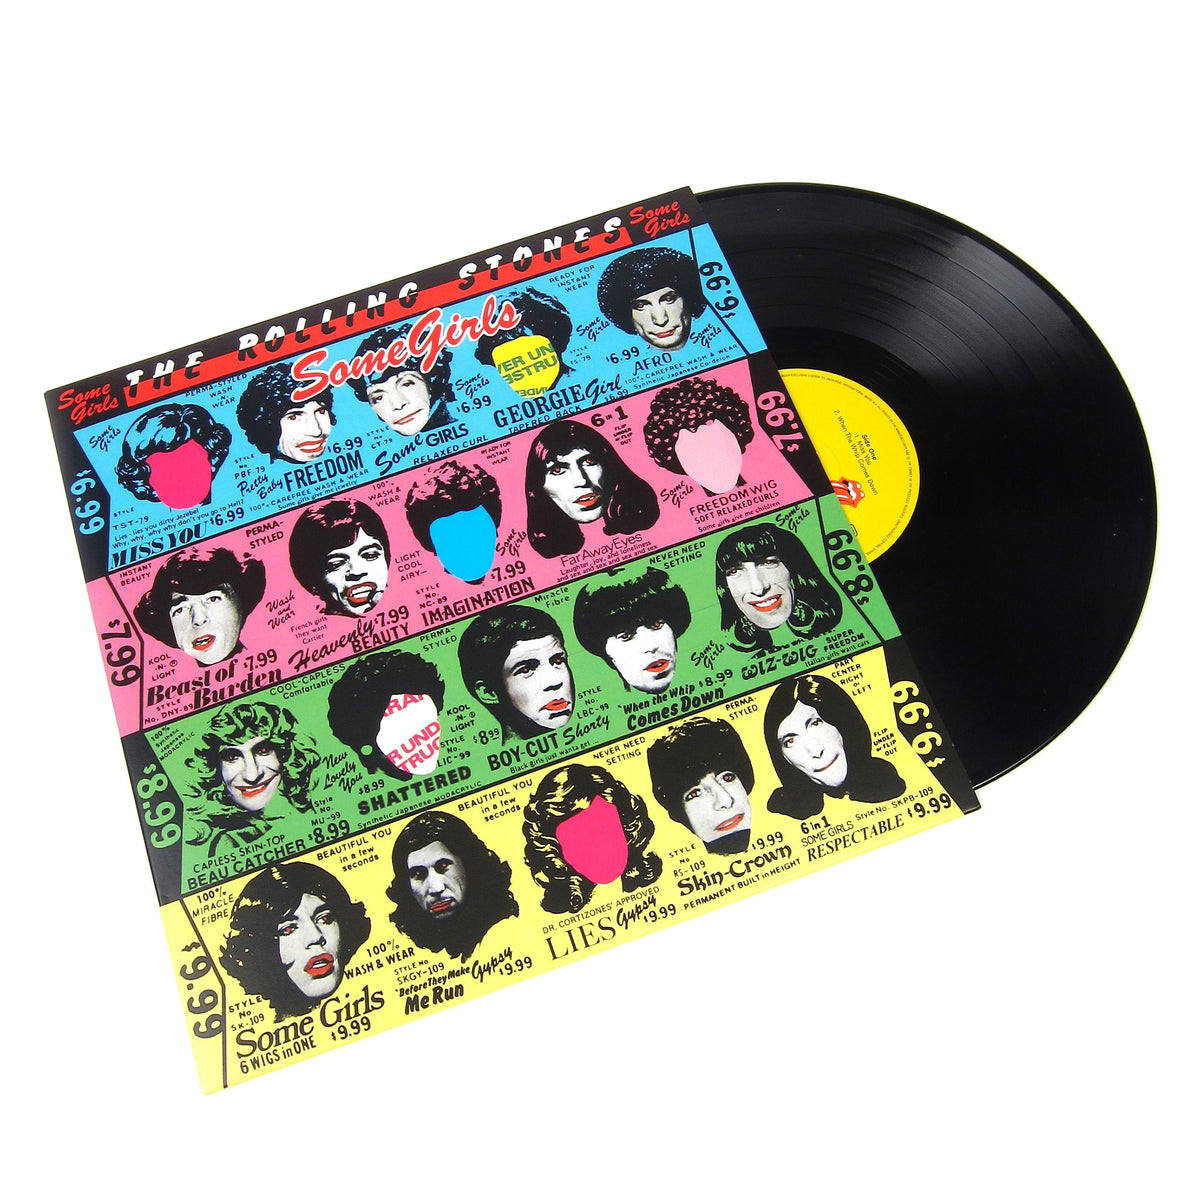 The Rolling Stones: Some Girls (180g) Vinyl LP